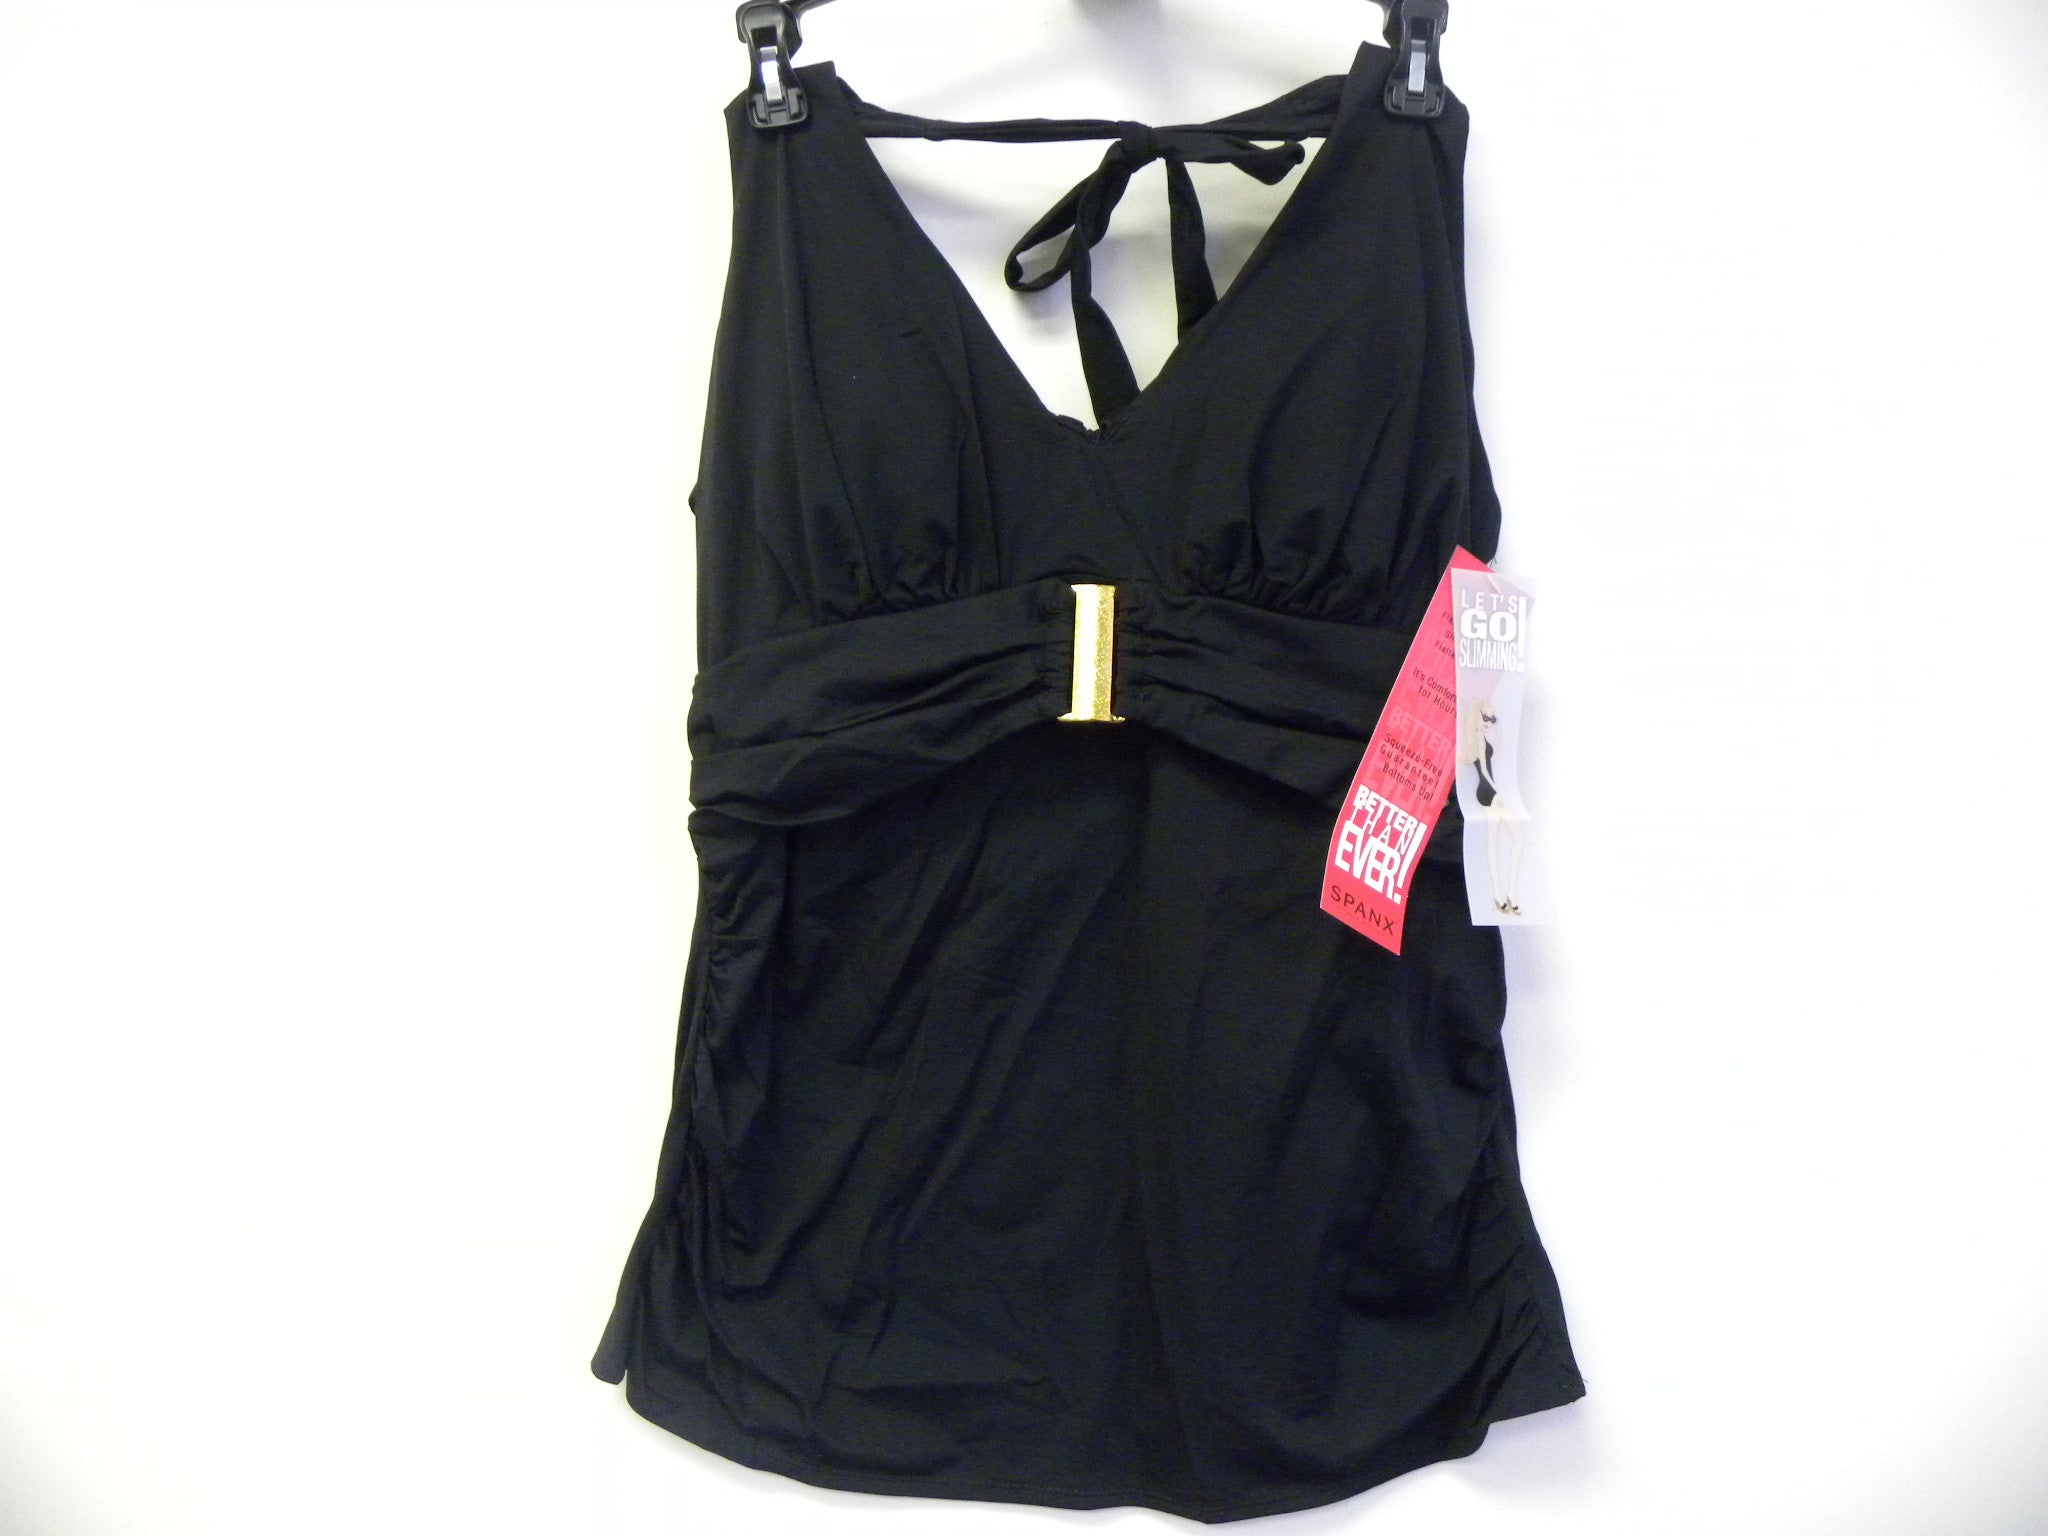 NEW, Authentic Spanx Belted Beauty Halter Tankini Swim Top (1398)- Black